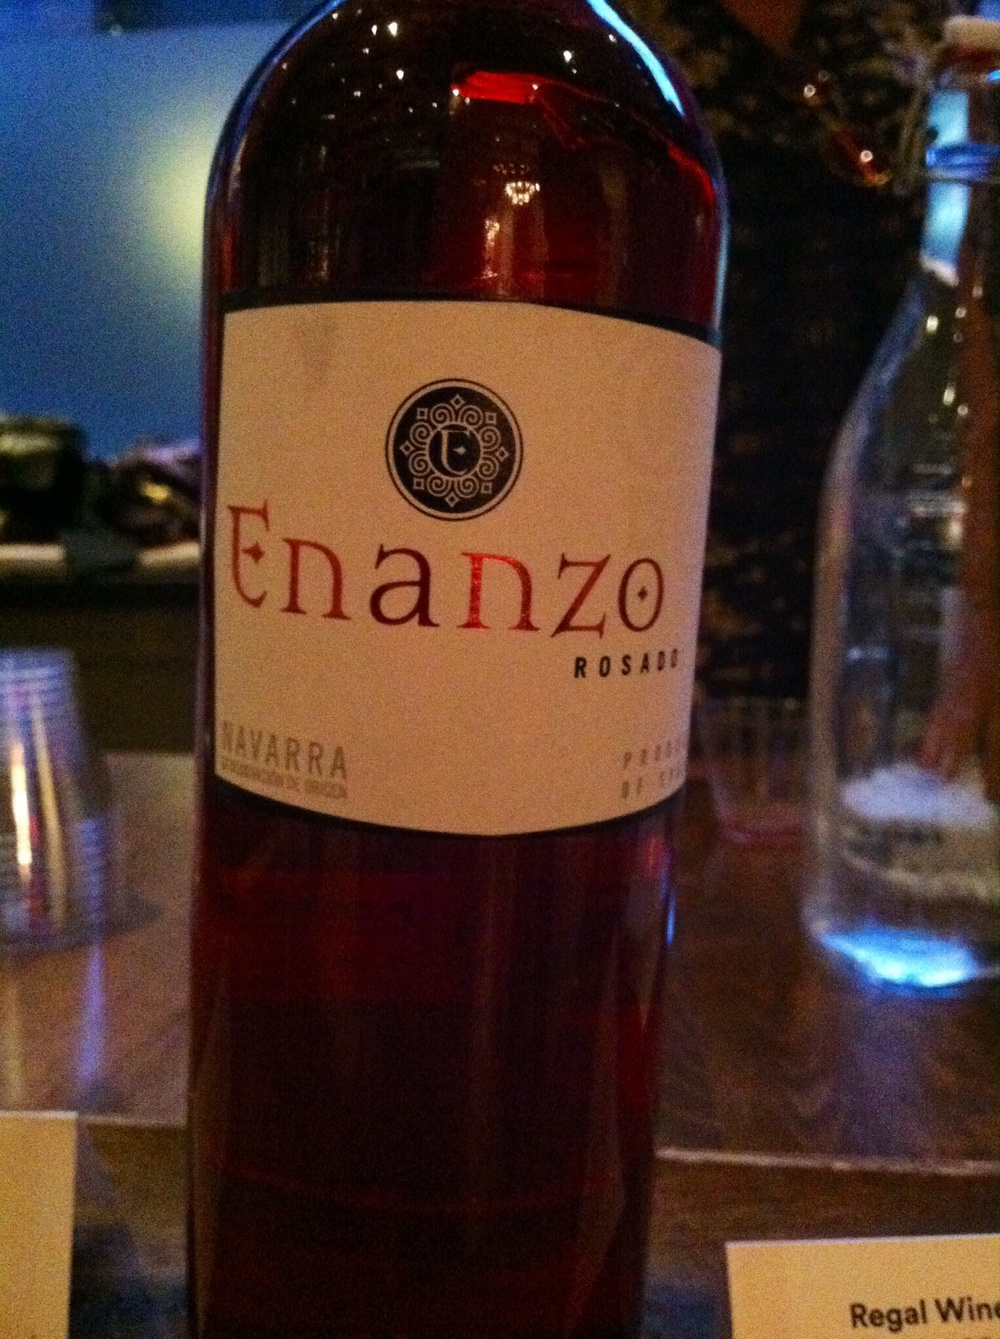 Enanzo, Rosado, Garnacha, Spain, 2013.  Photo by Shana Sokol, Shana Speaks Wine